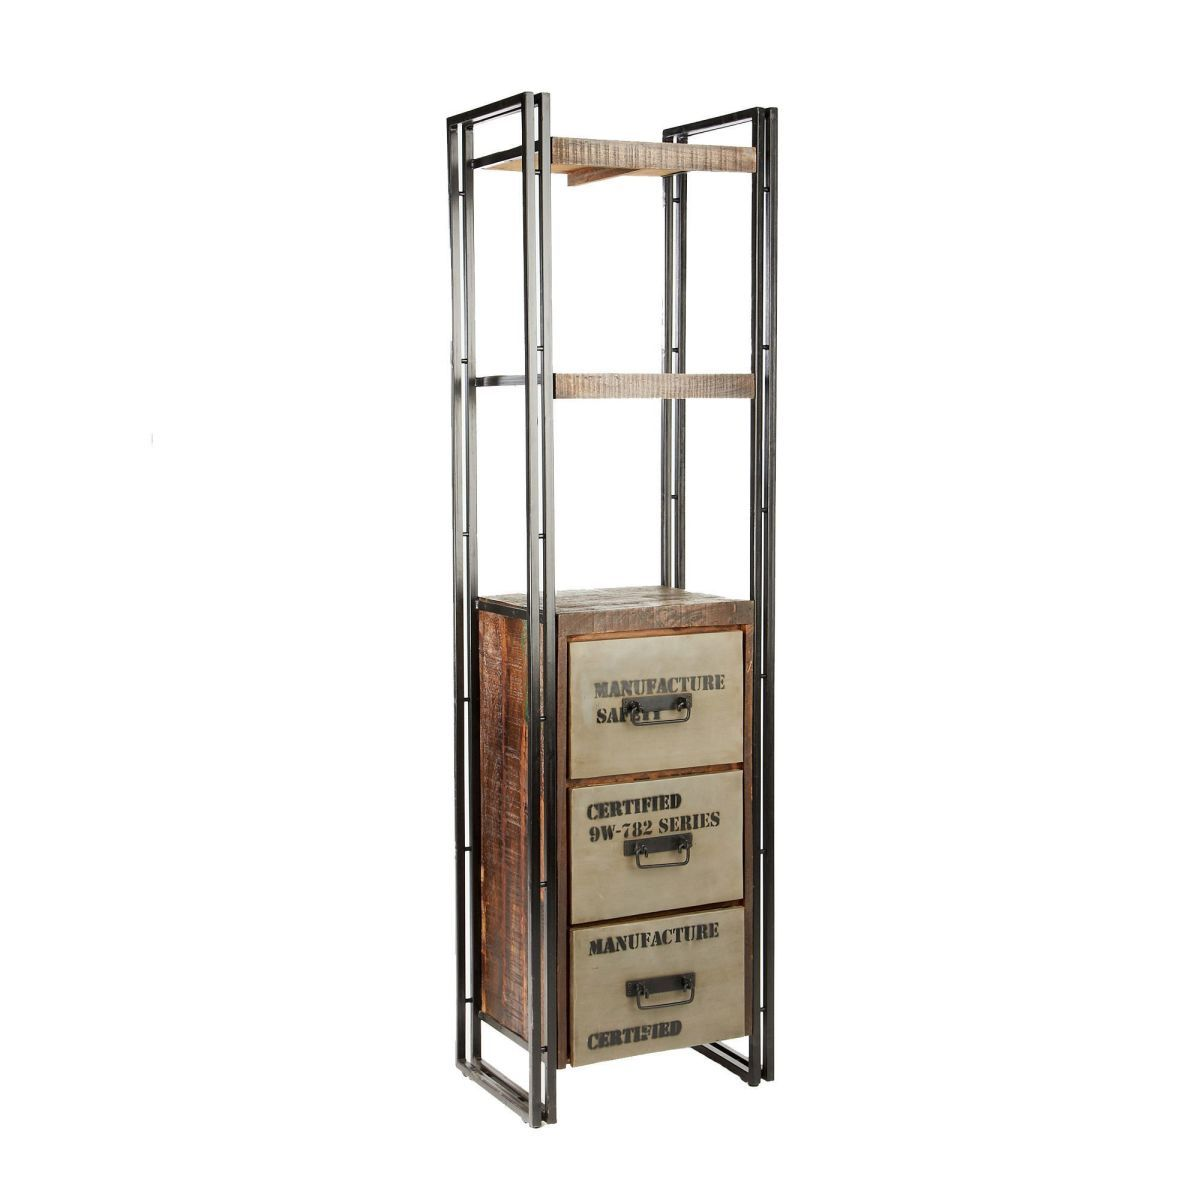 das massivholz regal im industrial chic stil sorgt f r einen beeindruckenden fabrik look in. Black Bedroom Furniture Sets. Home Design Ideas